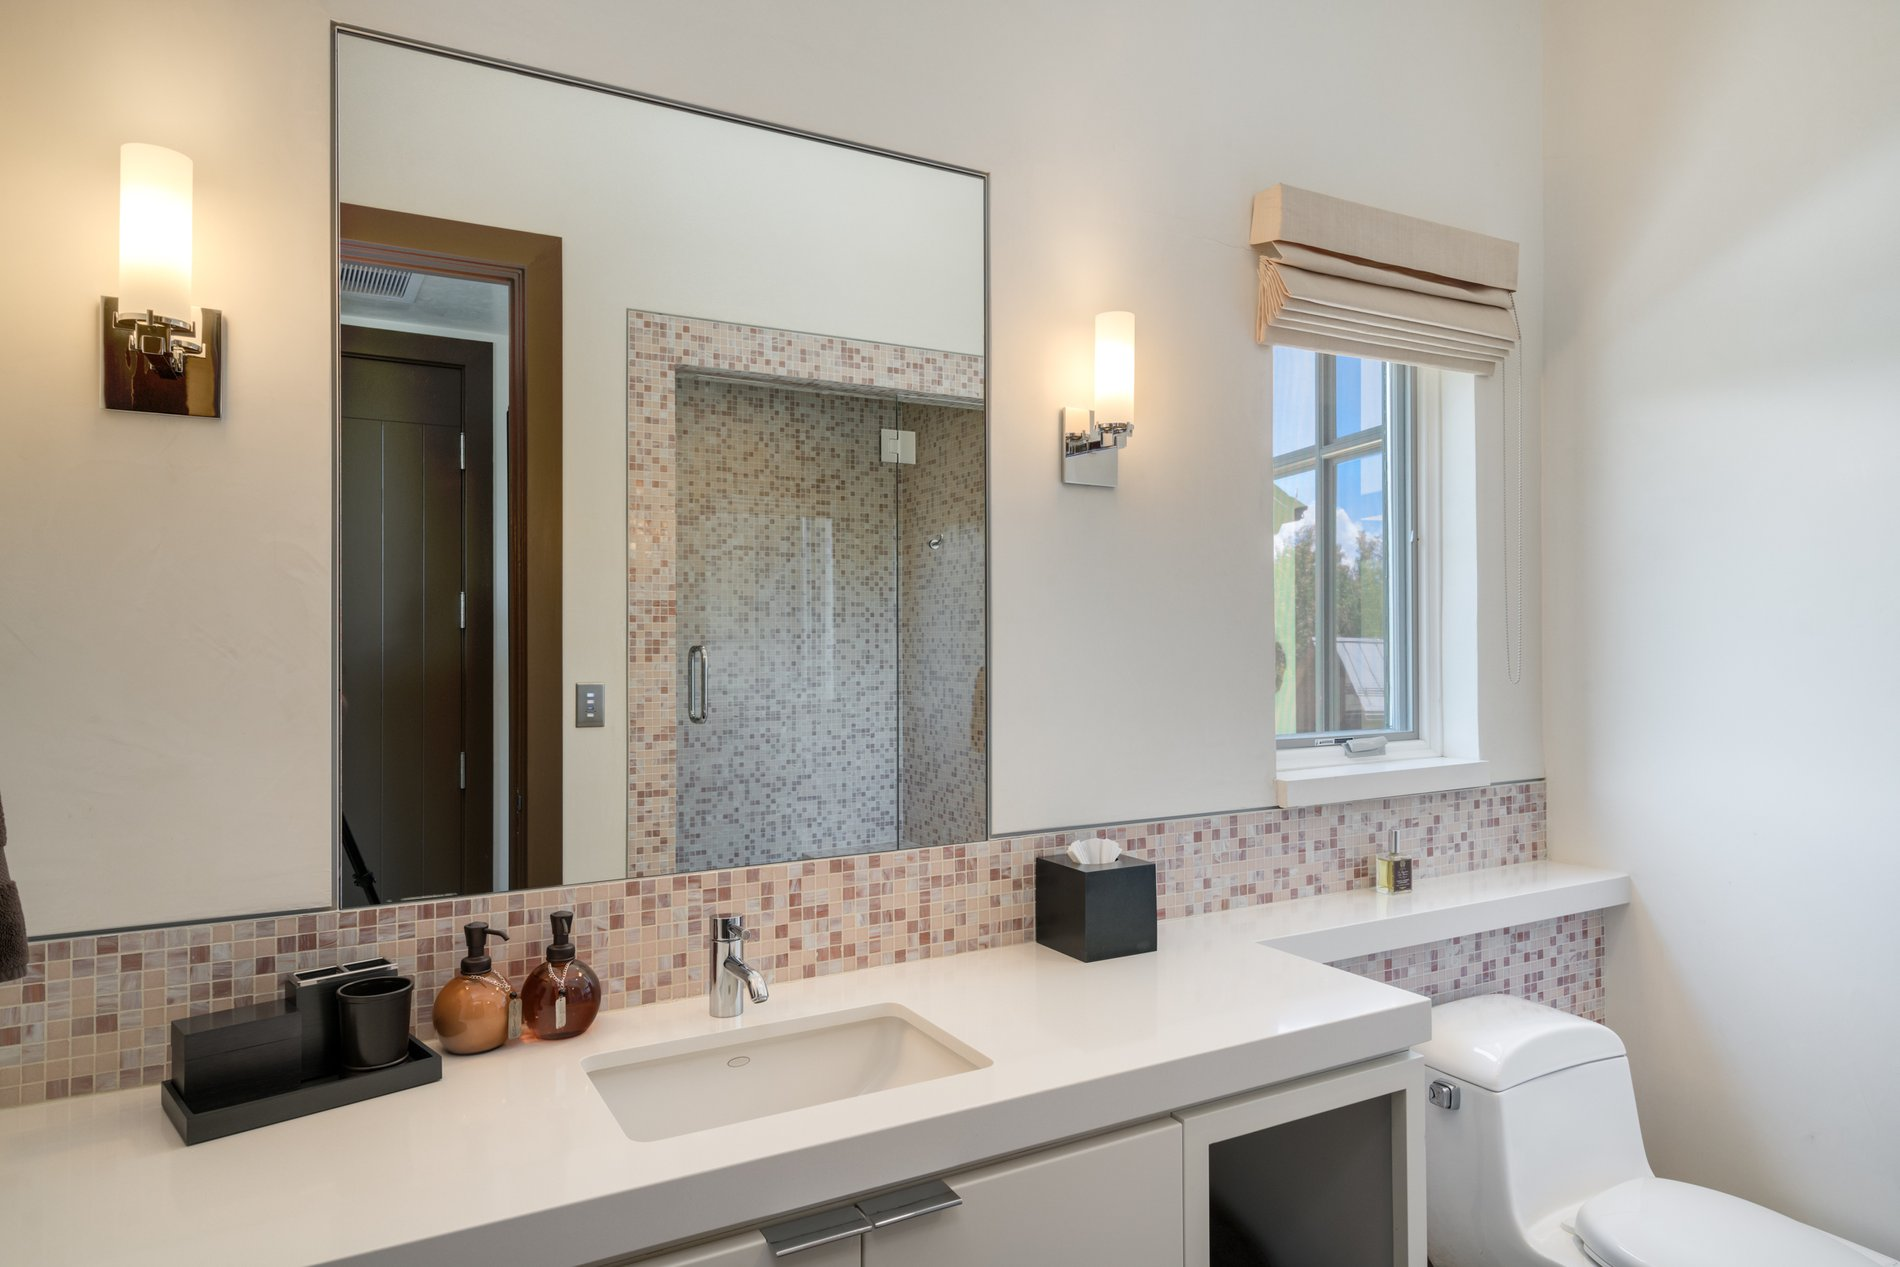 Half bath with a single sink, stone counter, flat faced cabinetry and tile backsplash. It's a cute bathroom that's just the right size for guests.